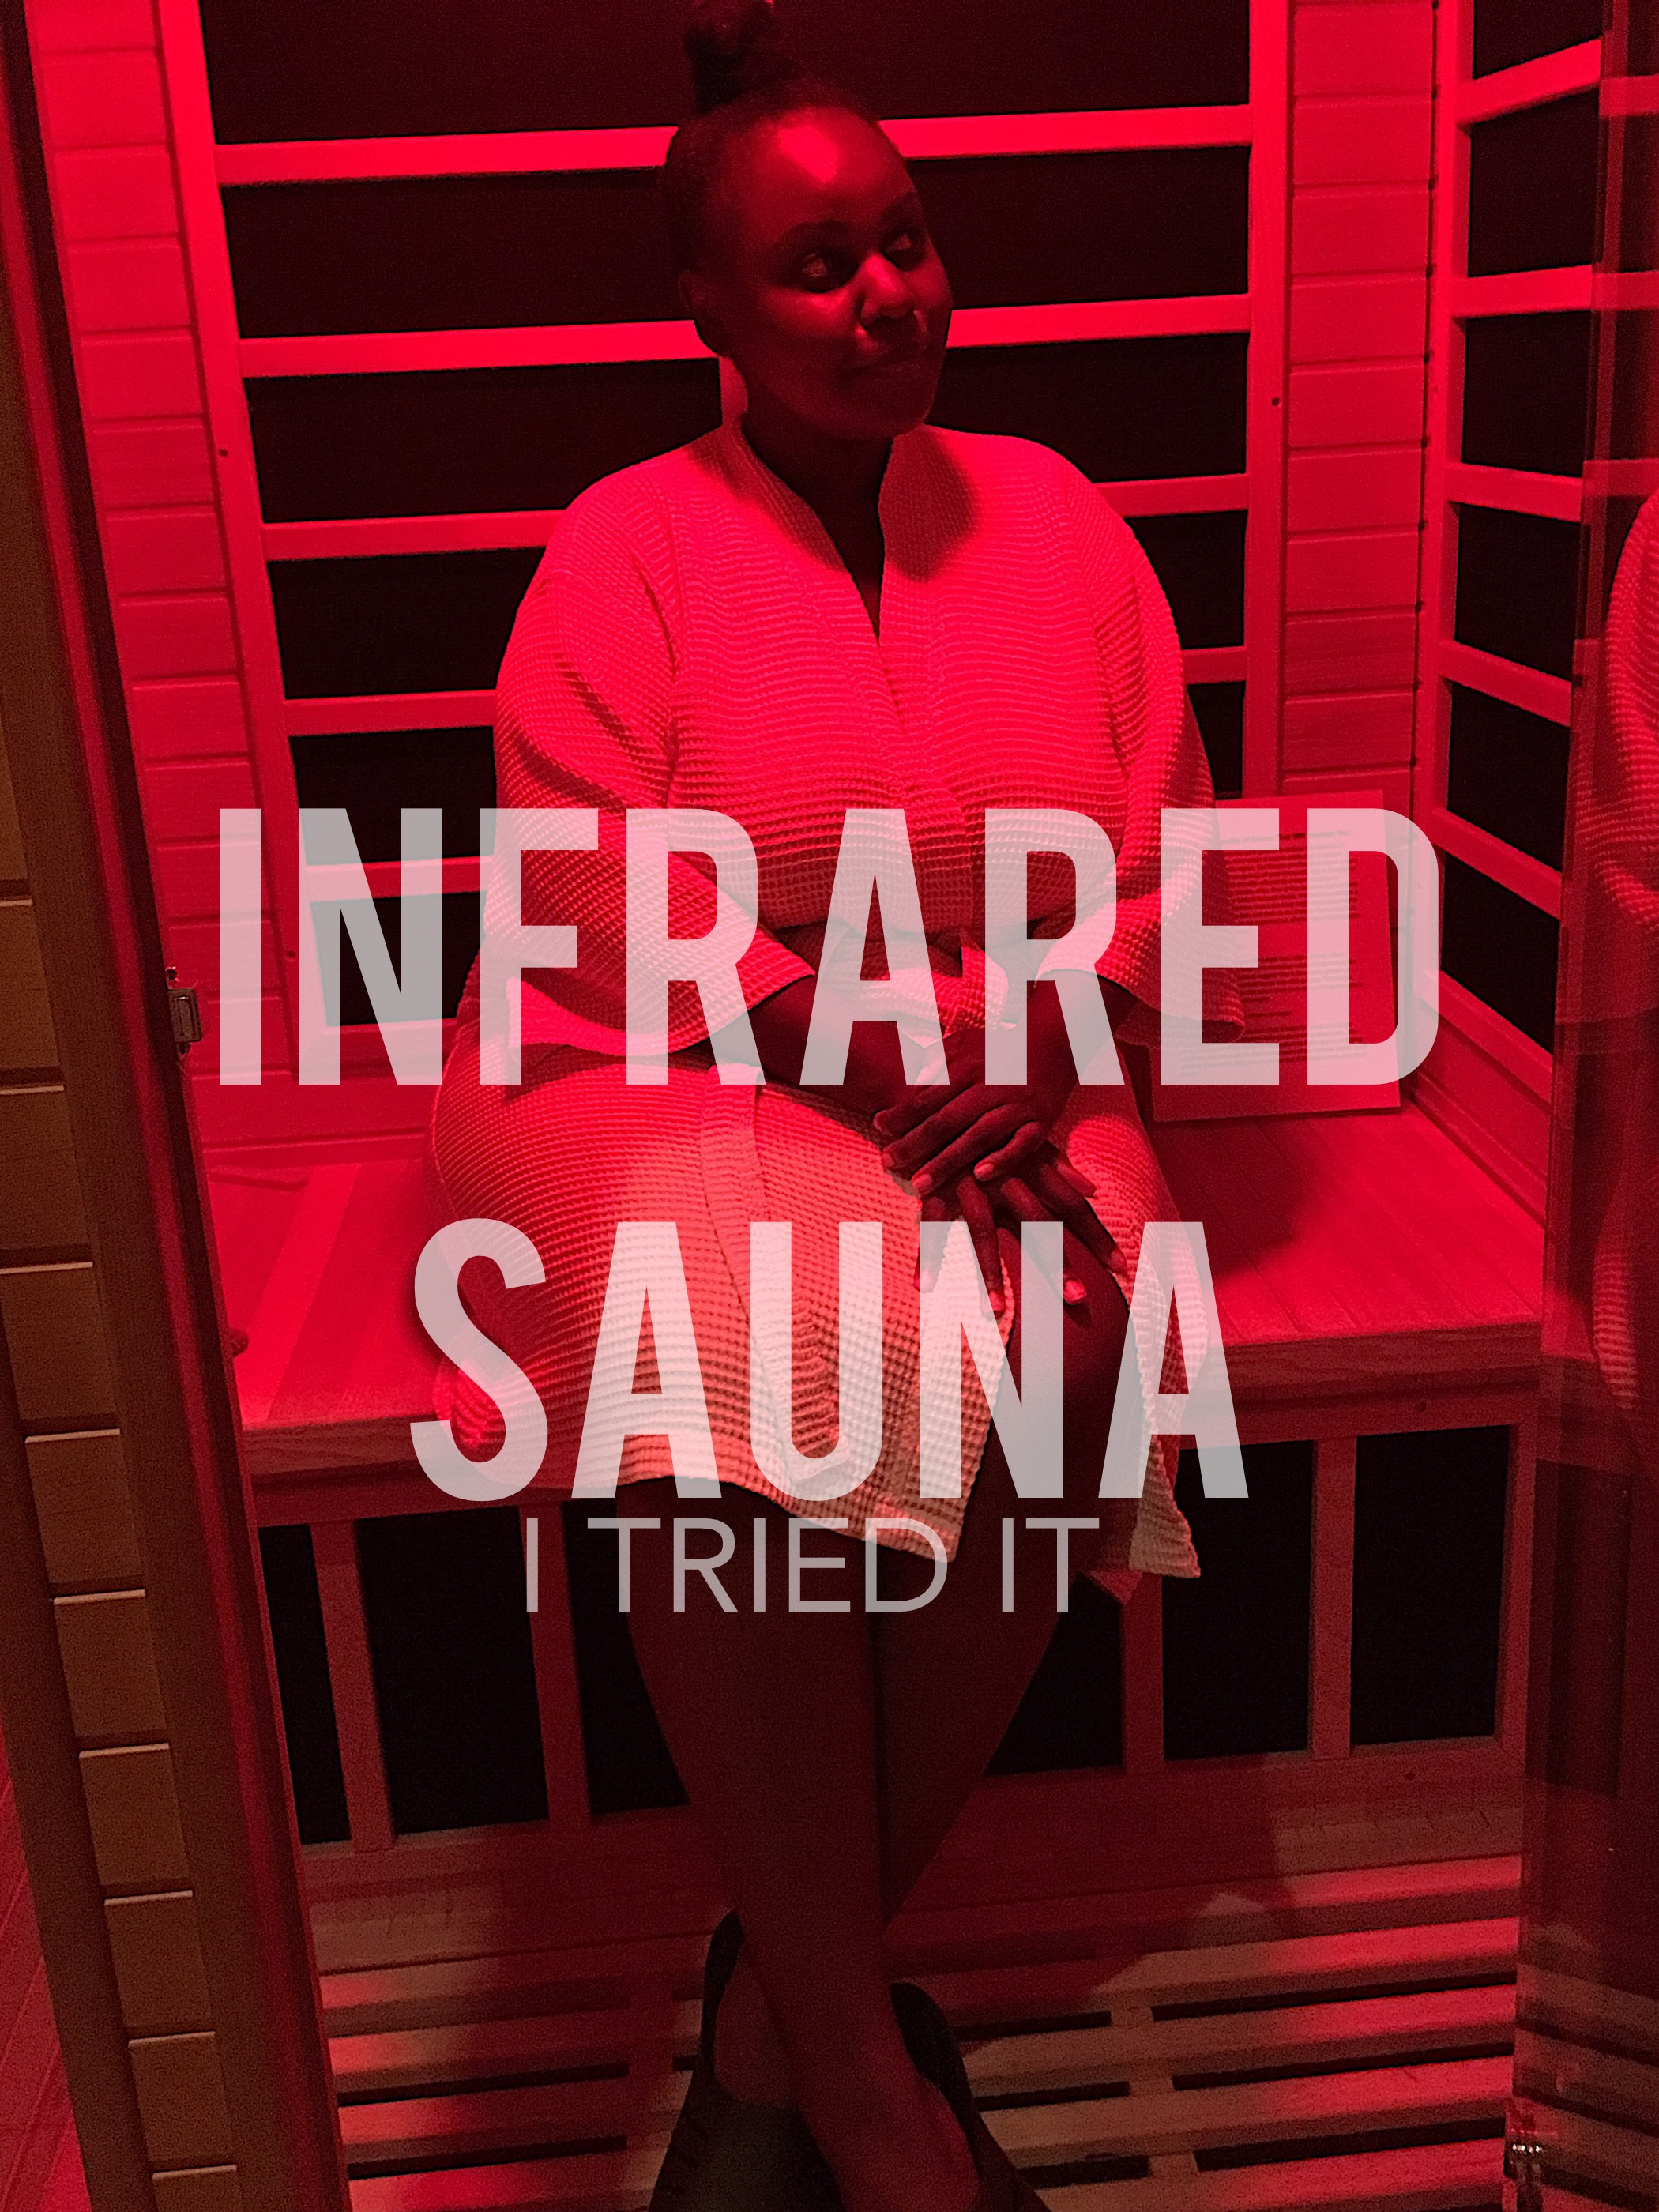 Infrared sauna houston spa day with the girls ideas steam bath, ideas for your birthday